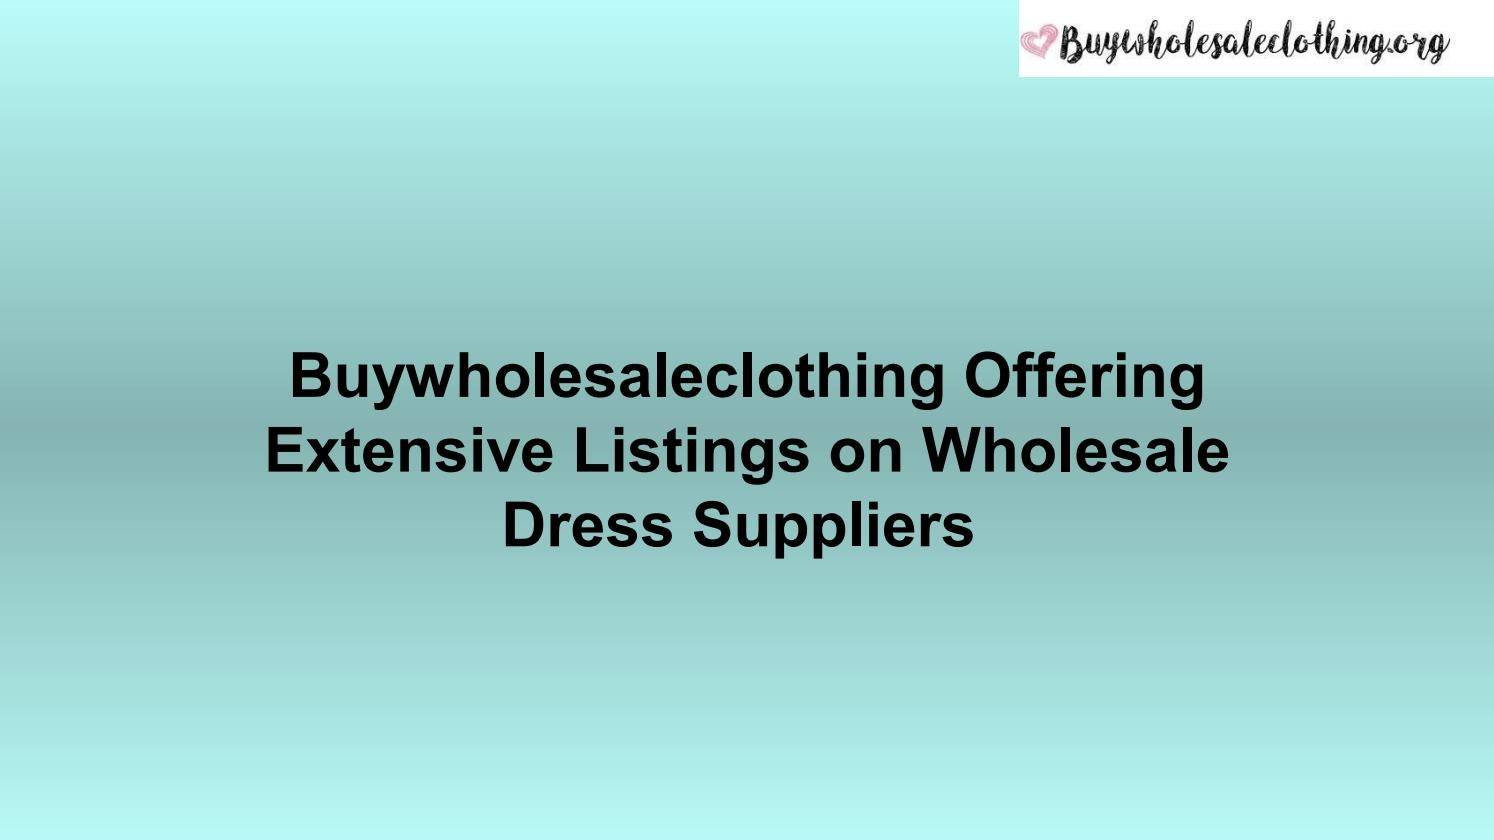 Buywholesaleclothing Offering Extensive Listings on Wholesale Dress Suppliers